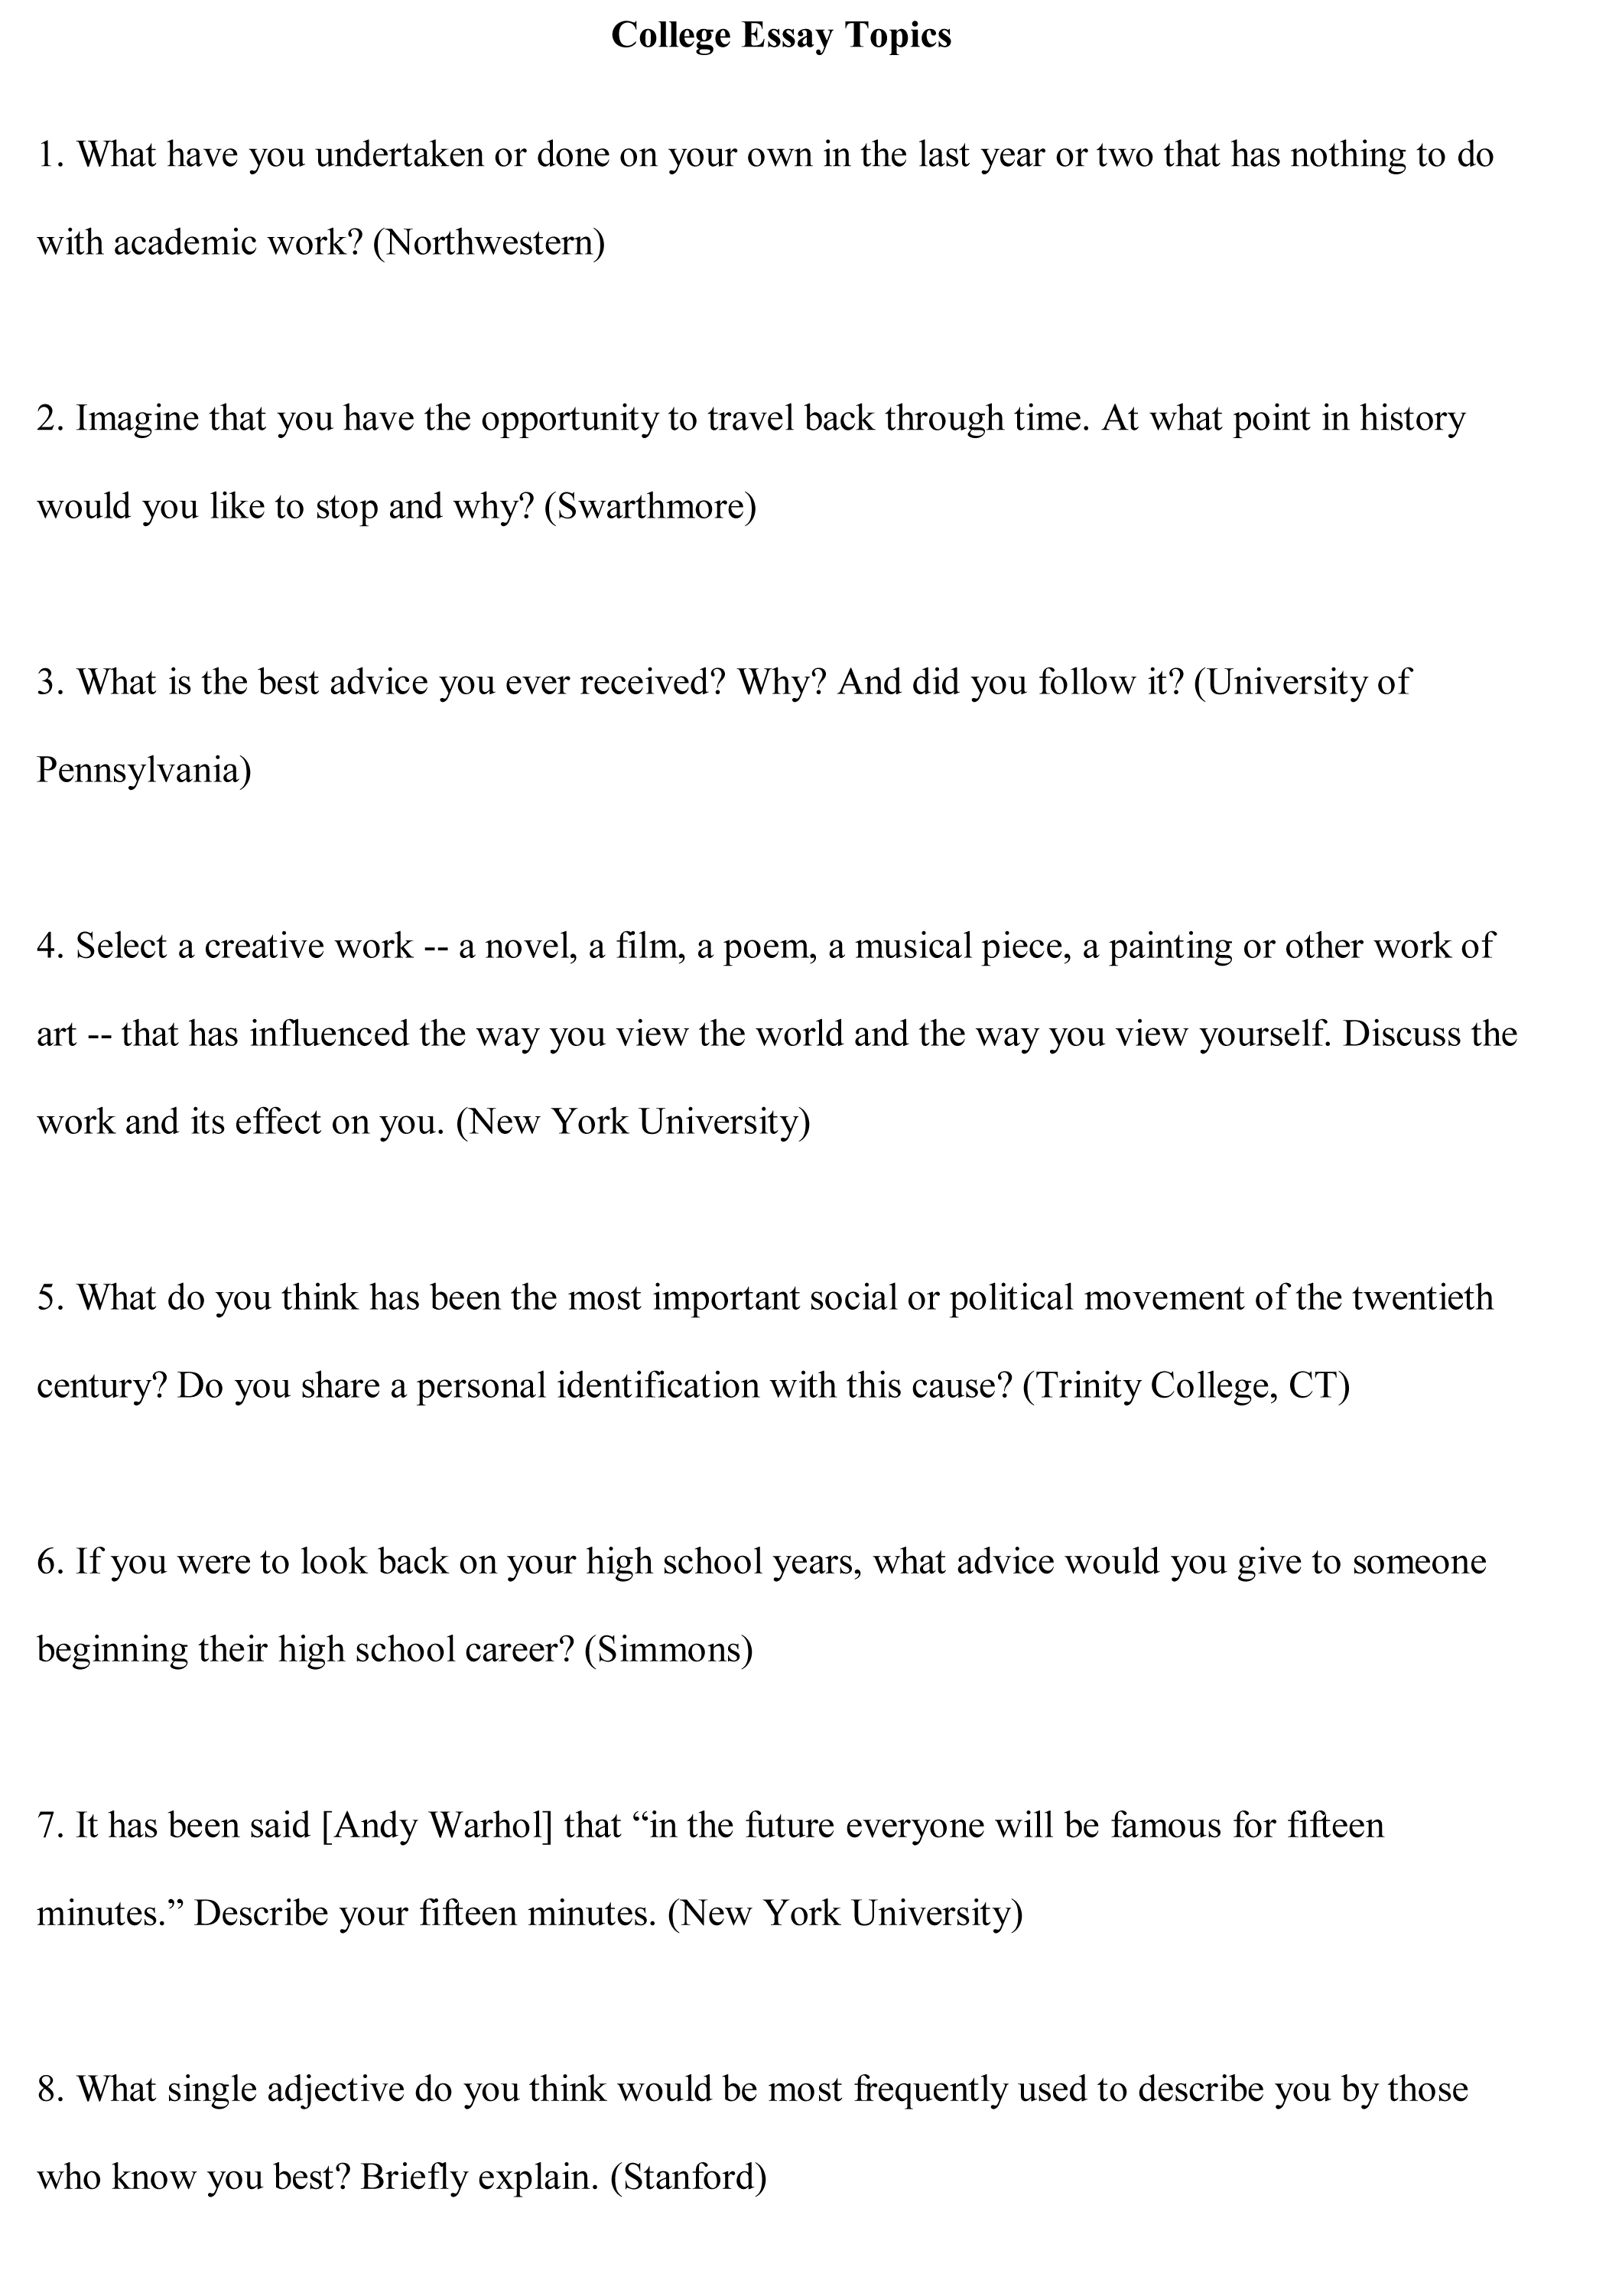 paper for college resume yahoo answers sample resume for zero experience resume yahoo answers what should essay what to write my - What Do I Write My College Essay About